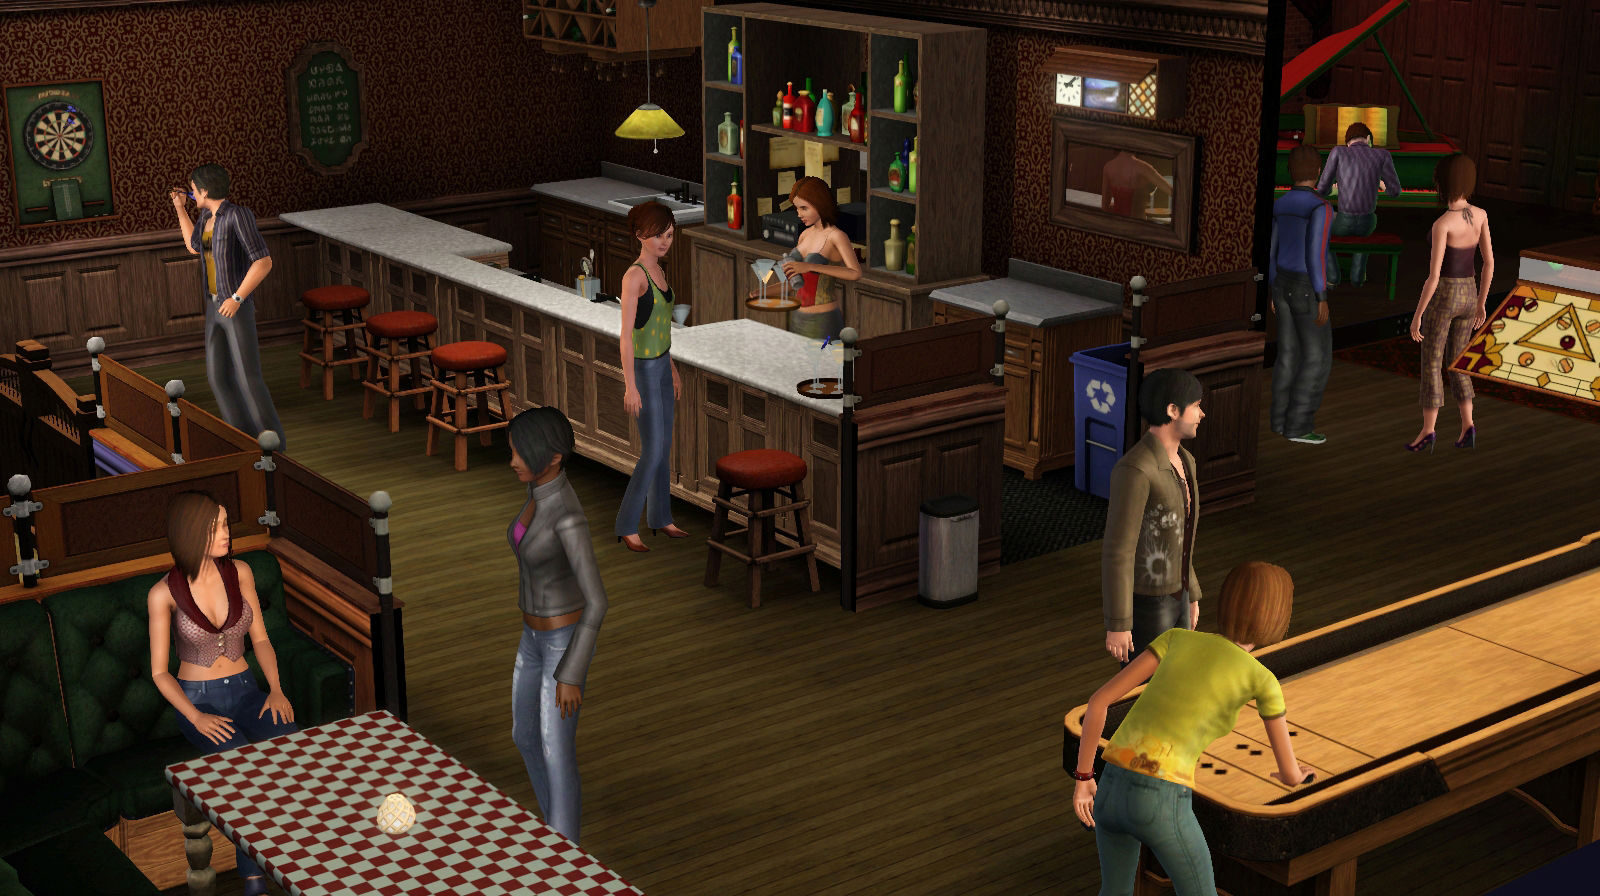 sims 3 into the future keygen